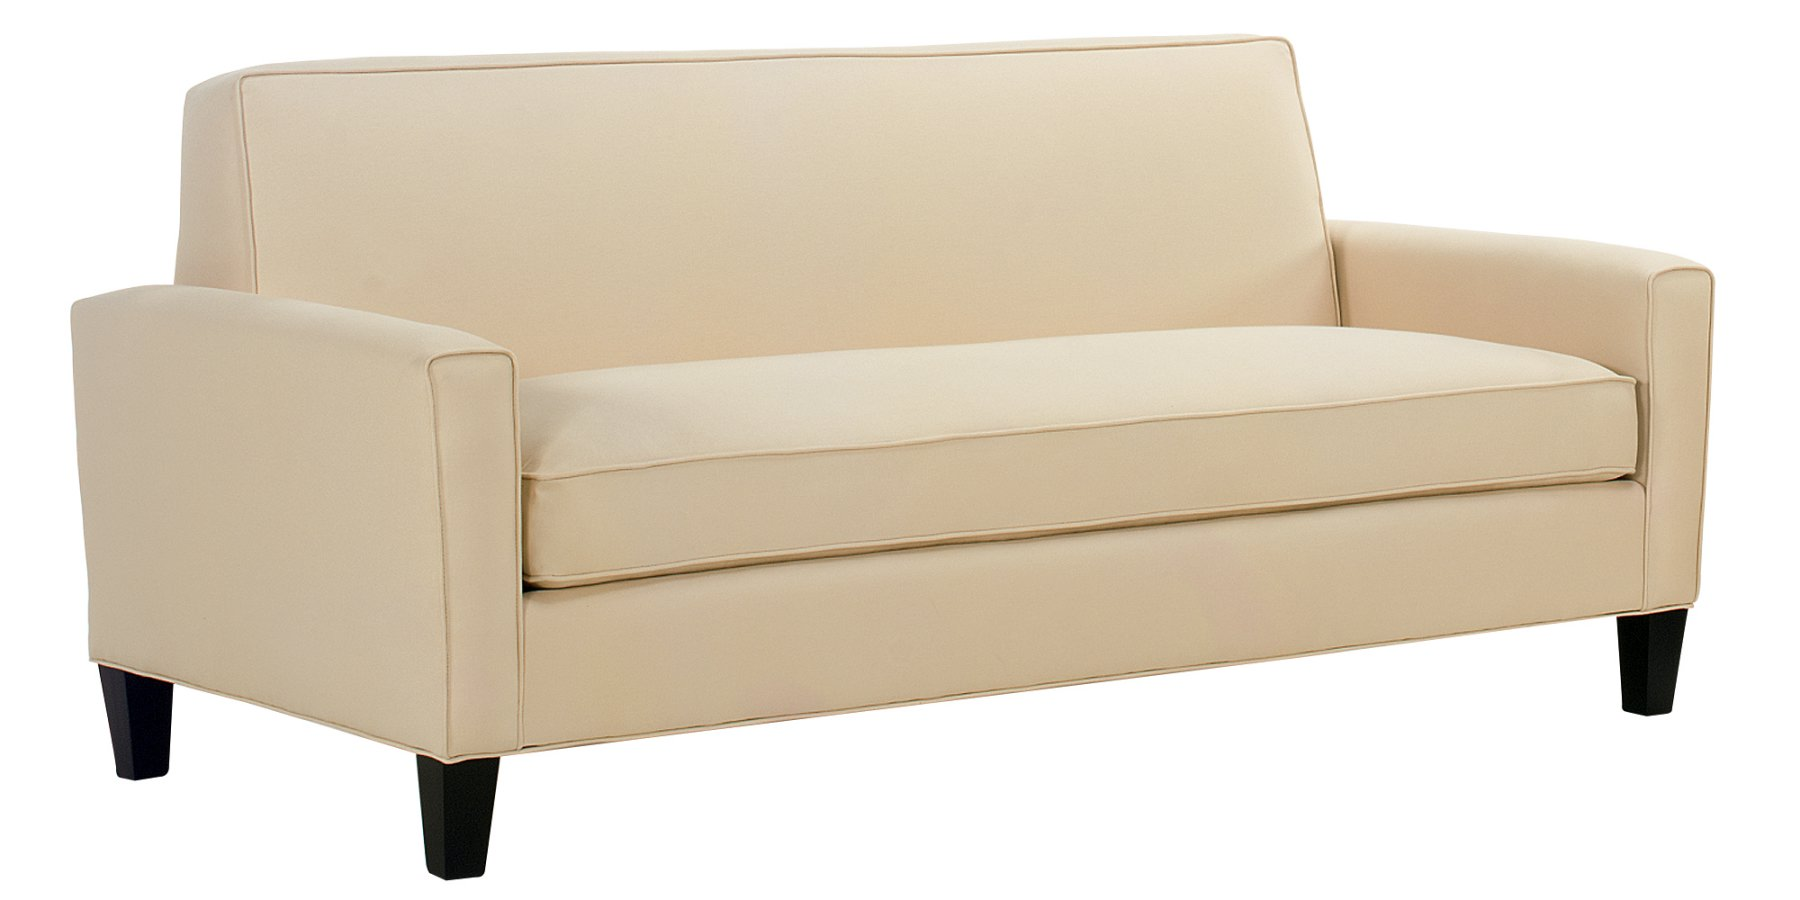 Contemporary Living Room Furniture With Bench Seat Club Furniture